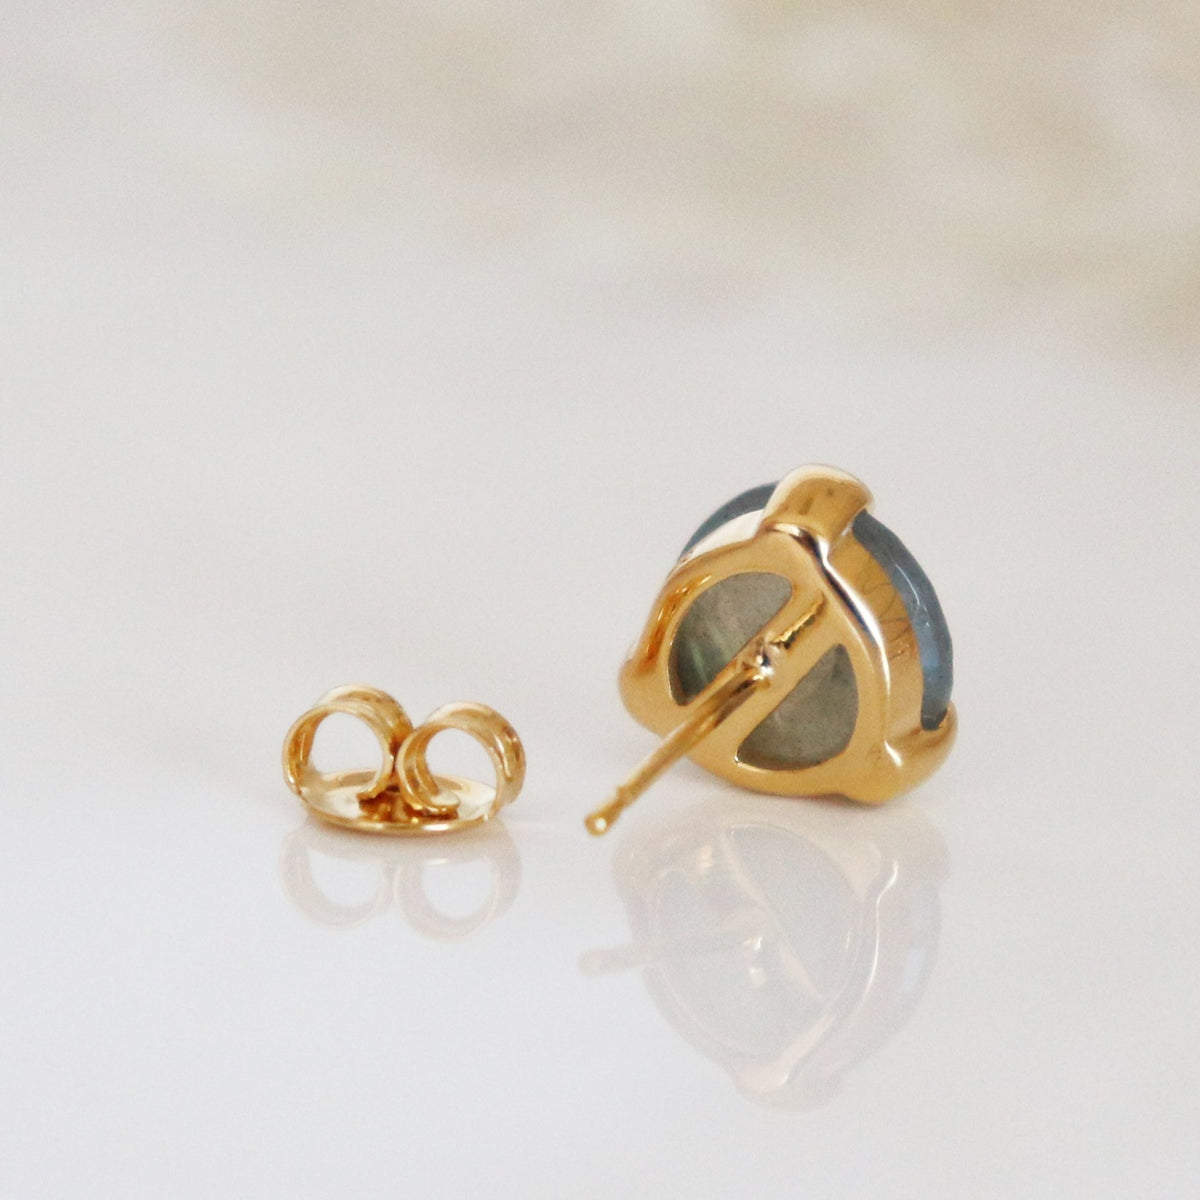 MINI FEARLESS STUDS - LABRADORITE & GOLD - SO PRETTY CARA COTTER